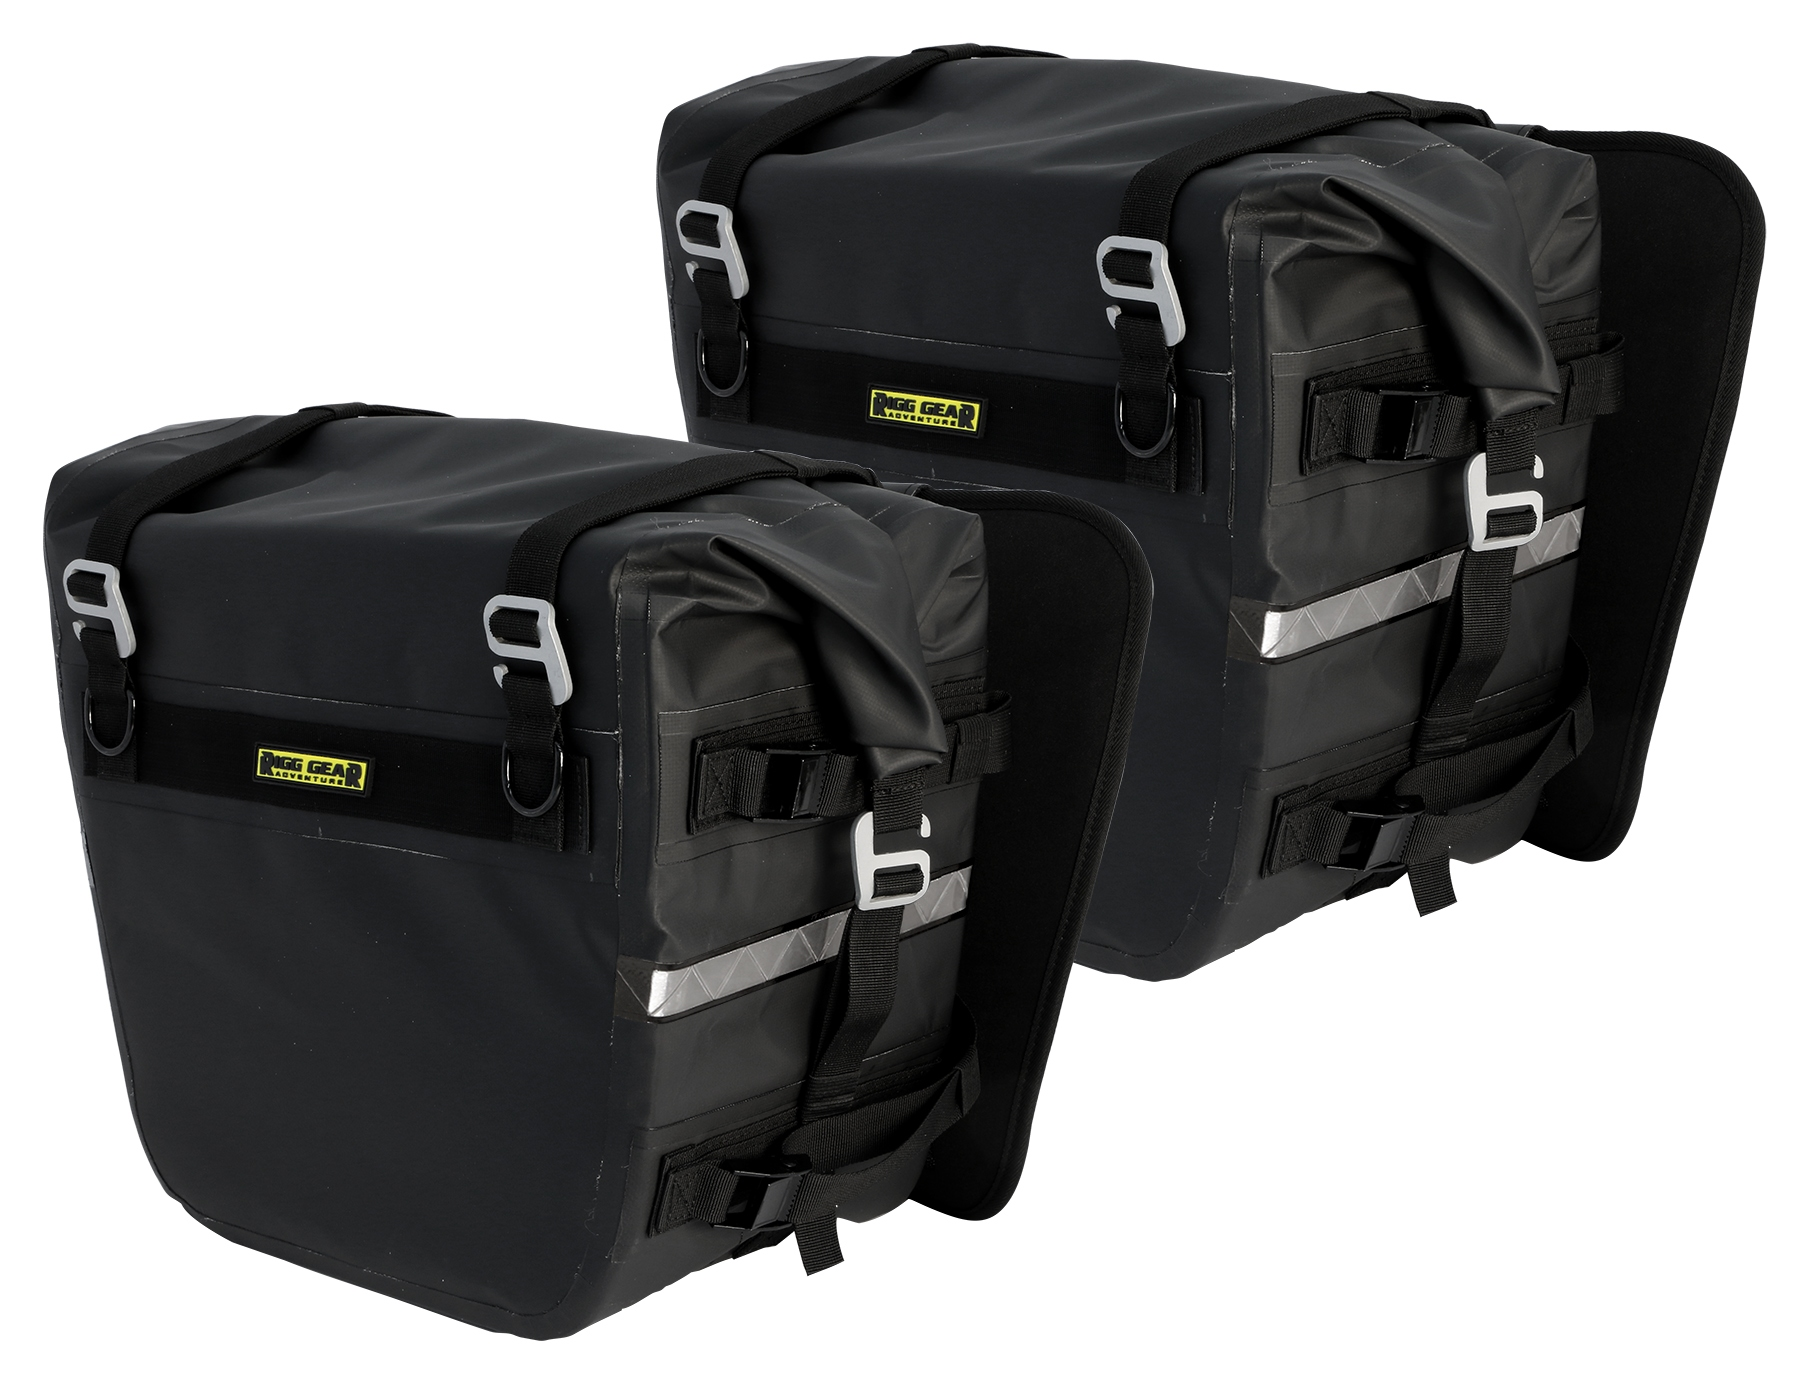 ebdb8565ccb3 Nelson Rigg SE-3050 Deluxe Adventure Dry Saddlebags